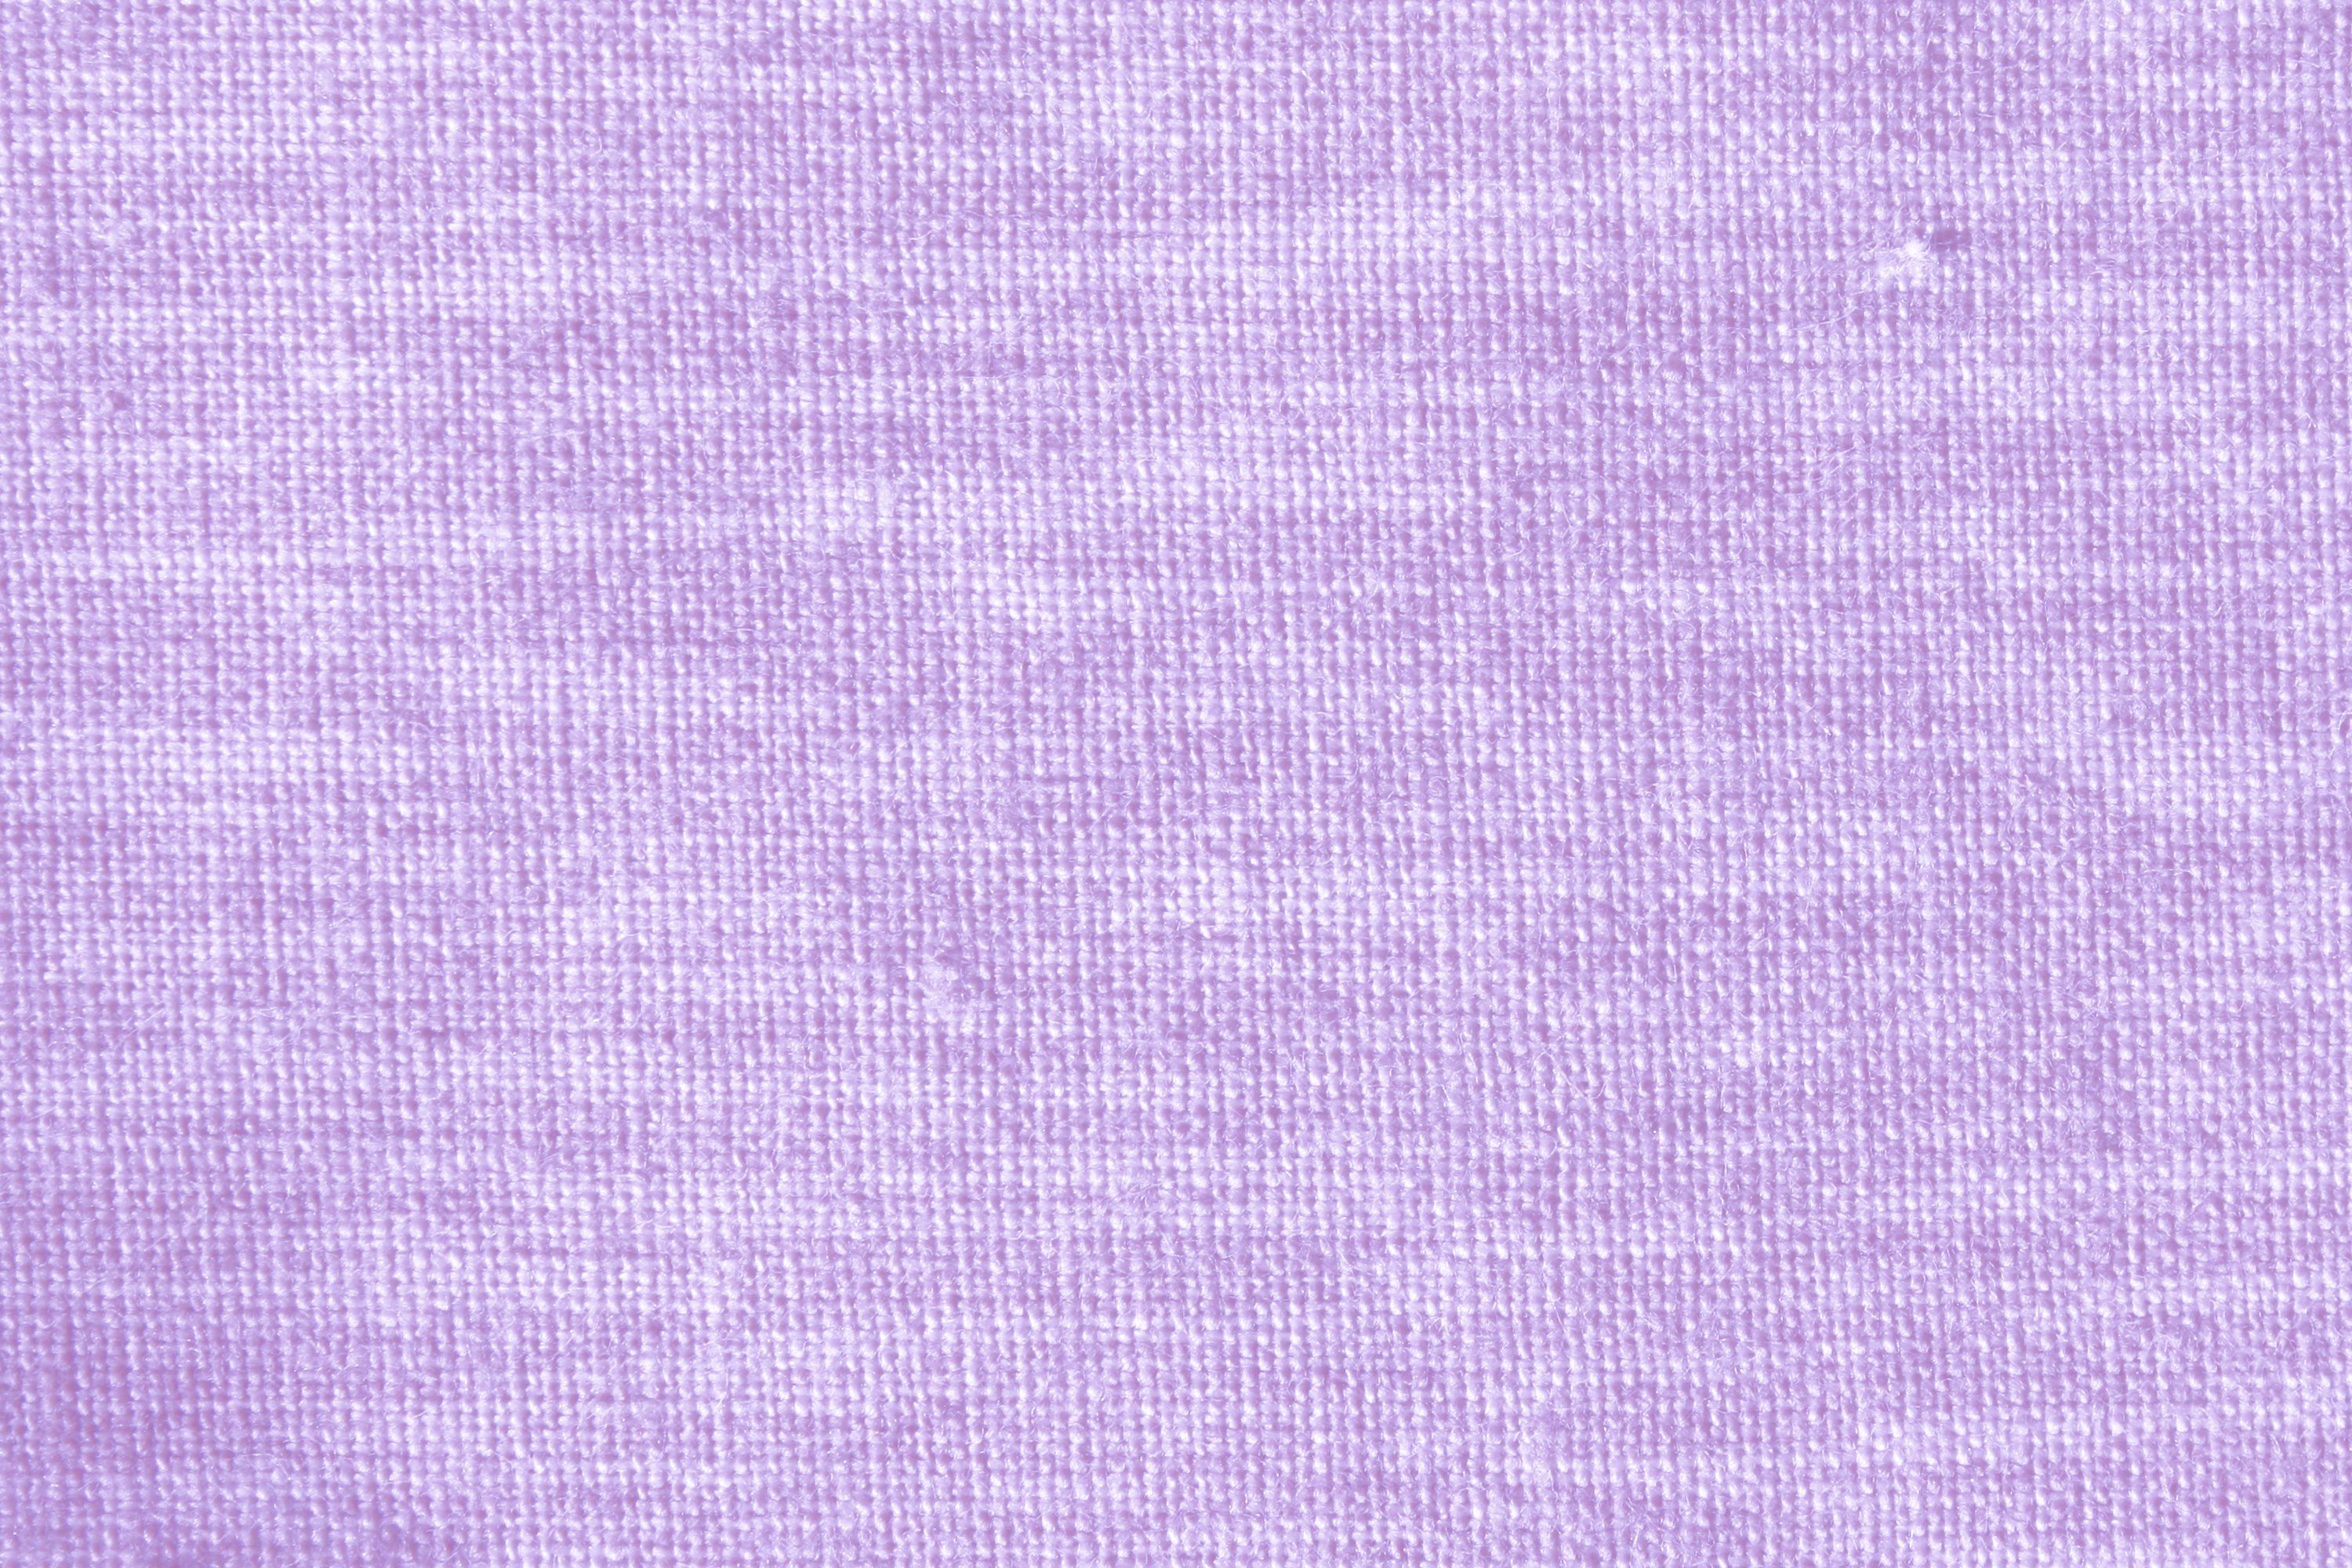 muted purple color fabric | Lavender or Light Purple Woven Fabric ... for Light Purple Background Pattern  165jwn